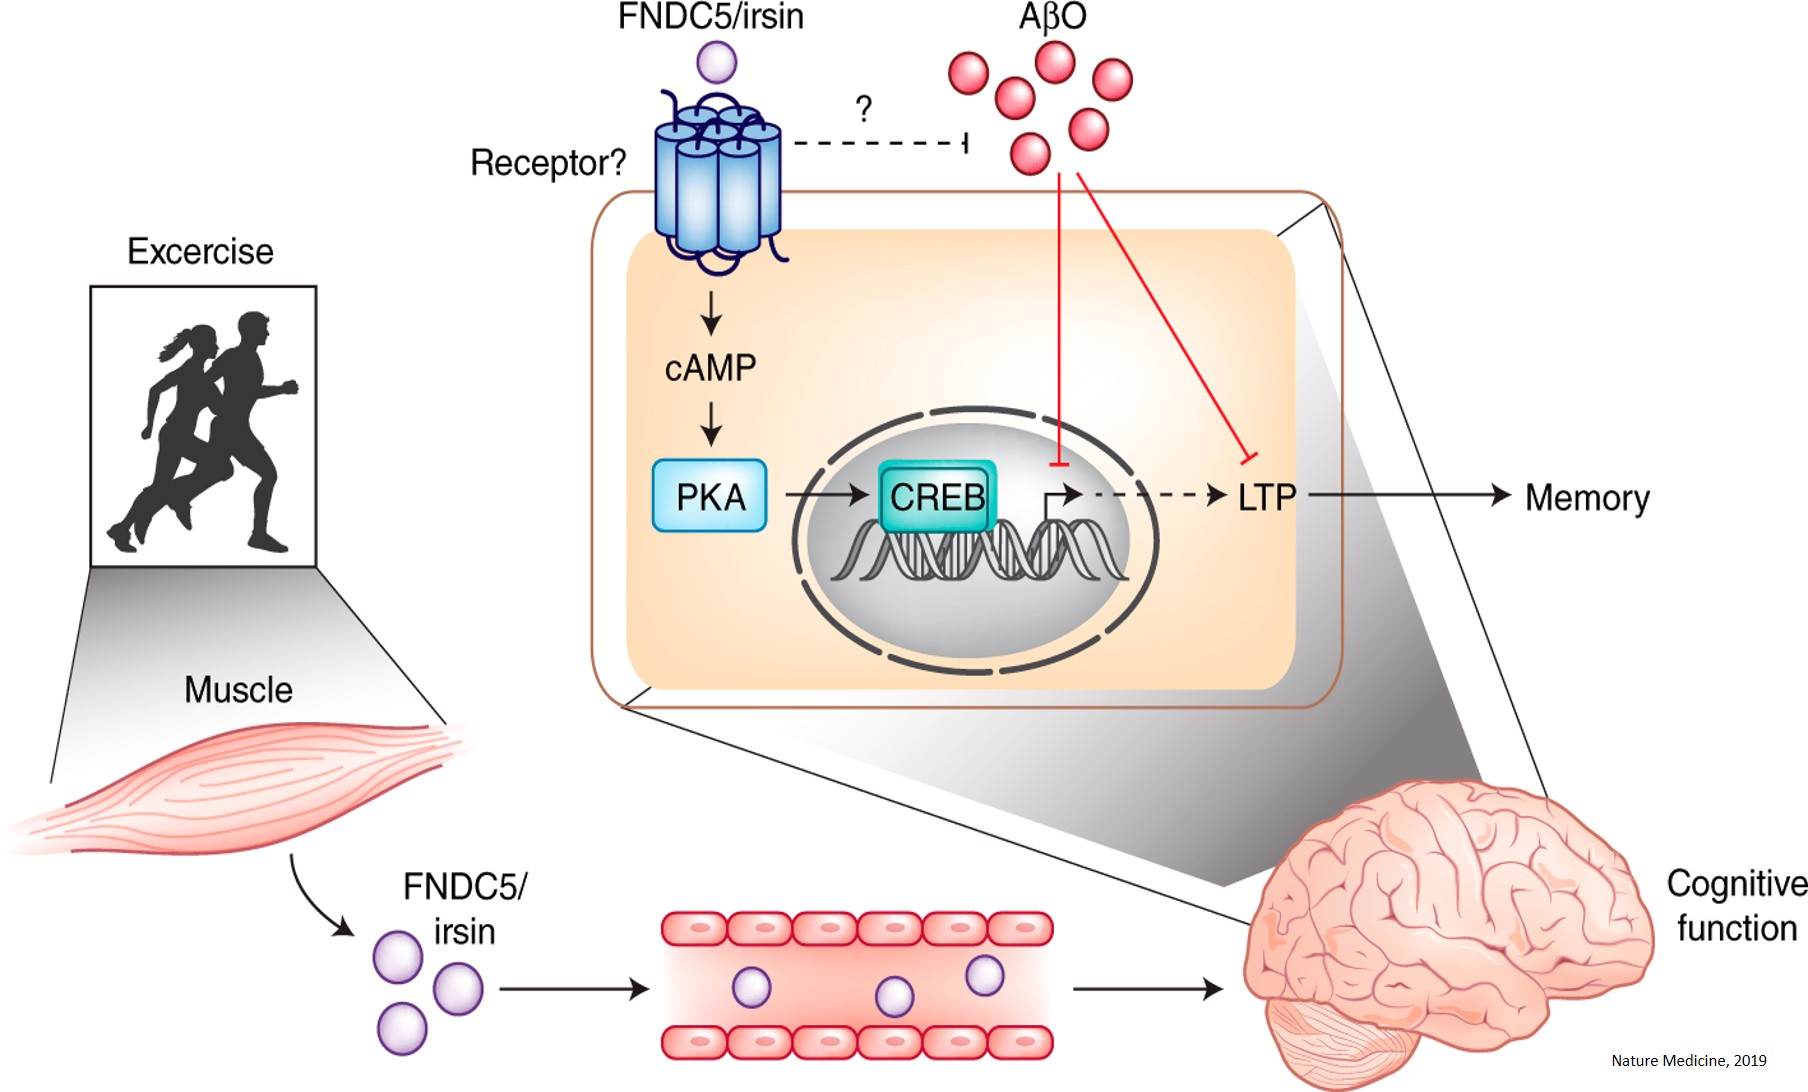 An exercise-induced messenger protects against Alzheimer's disease